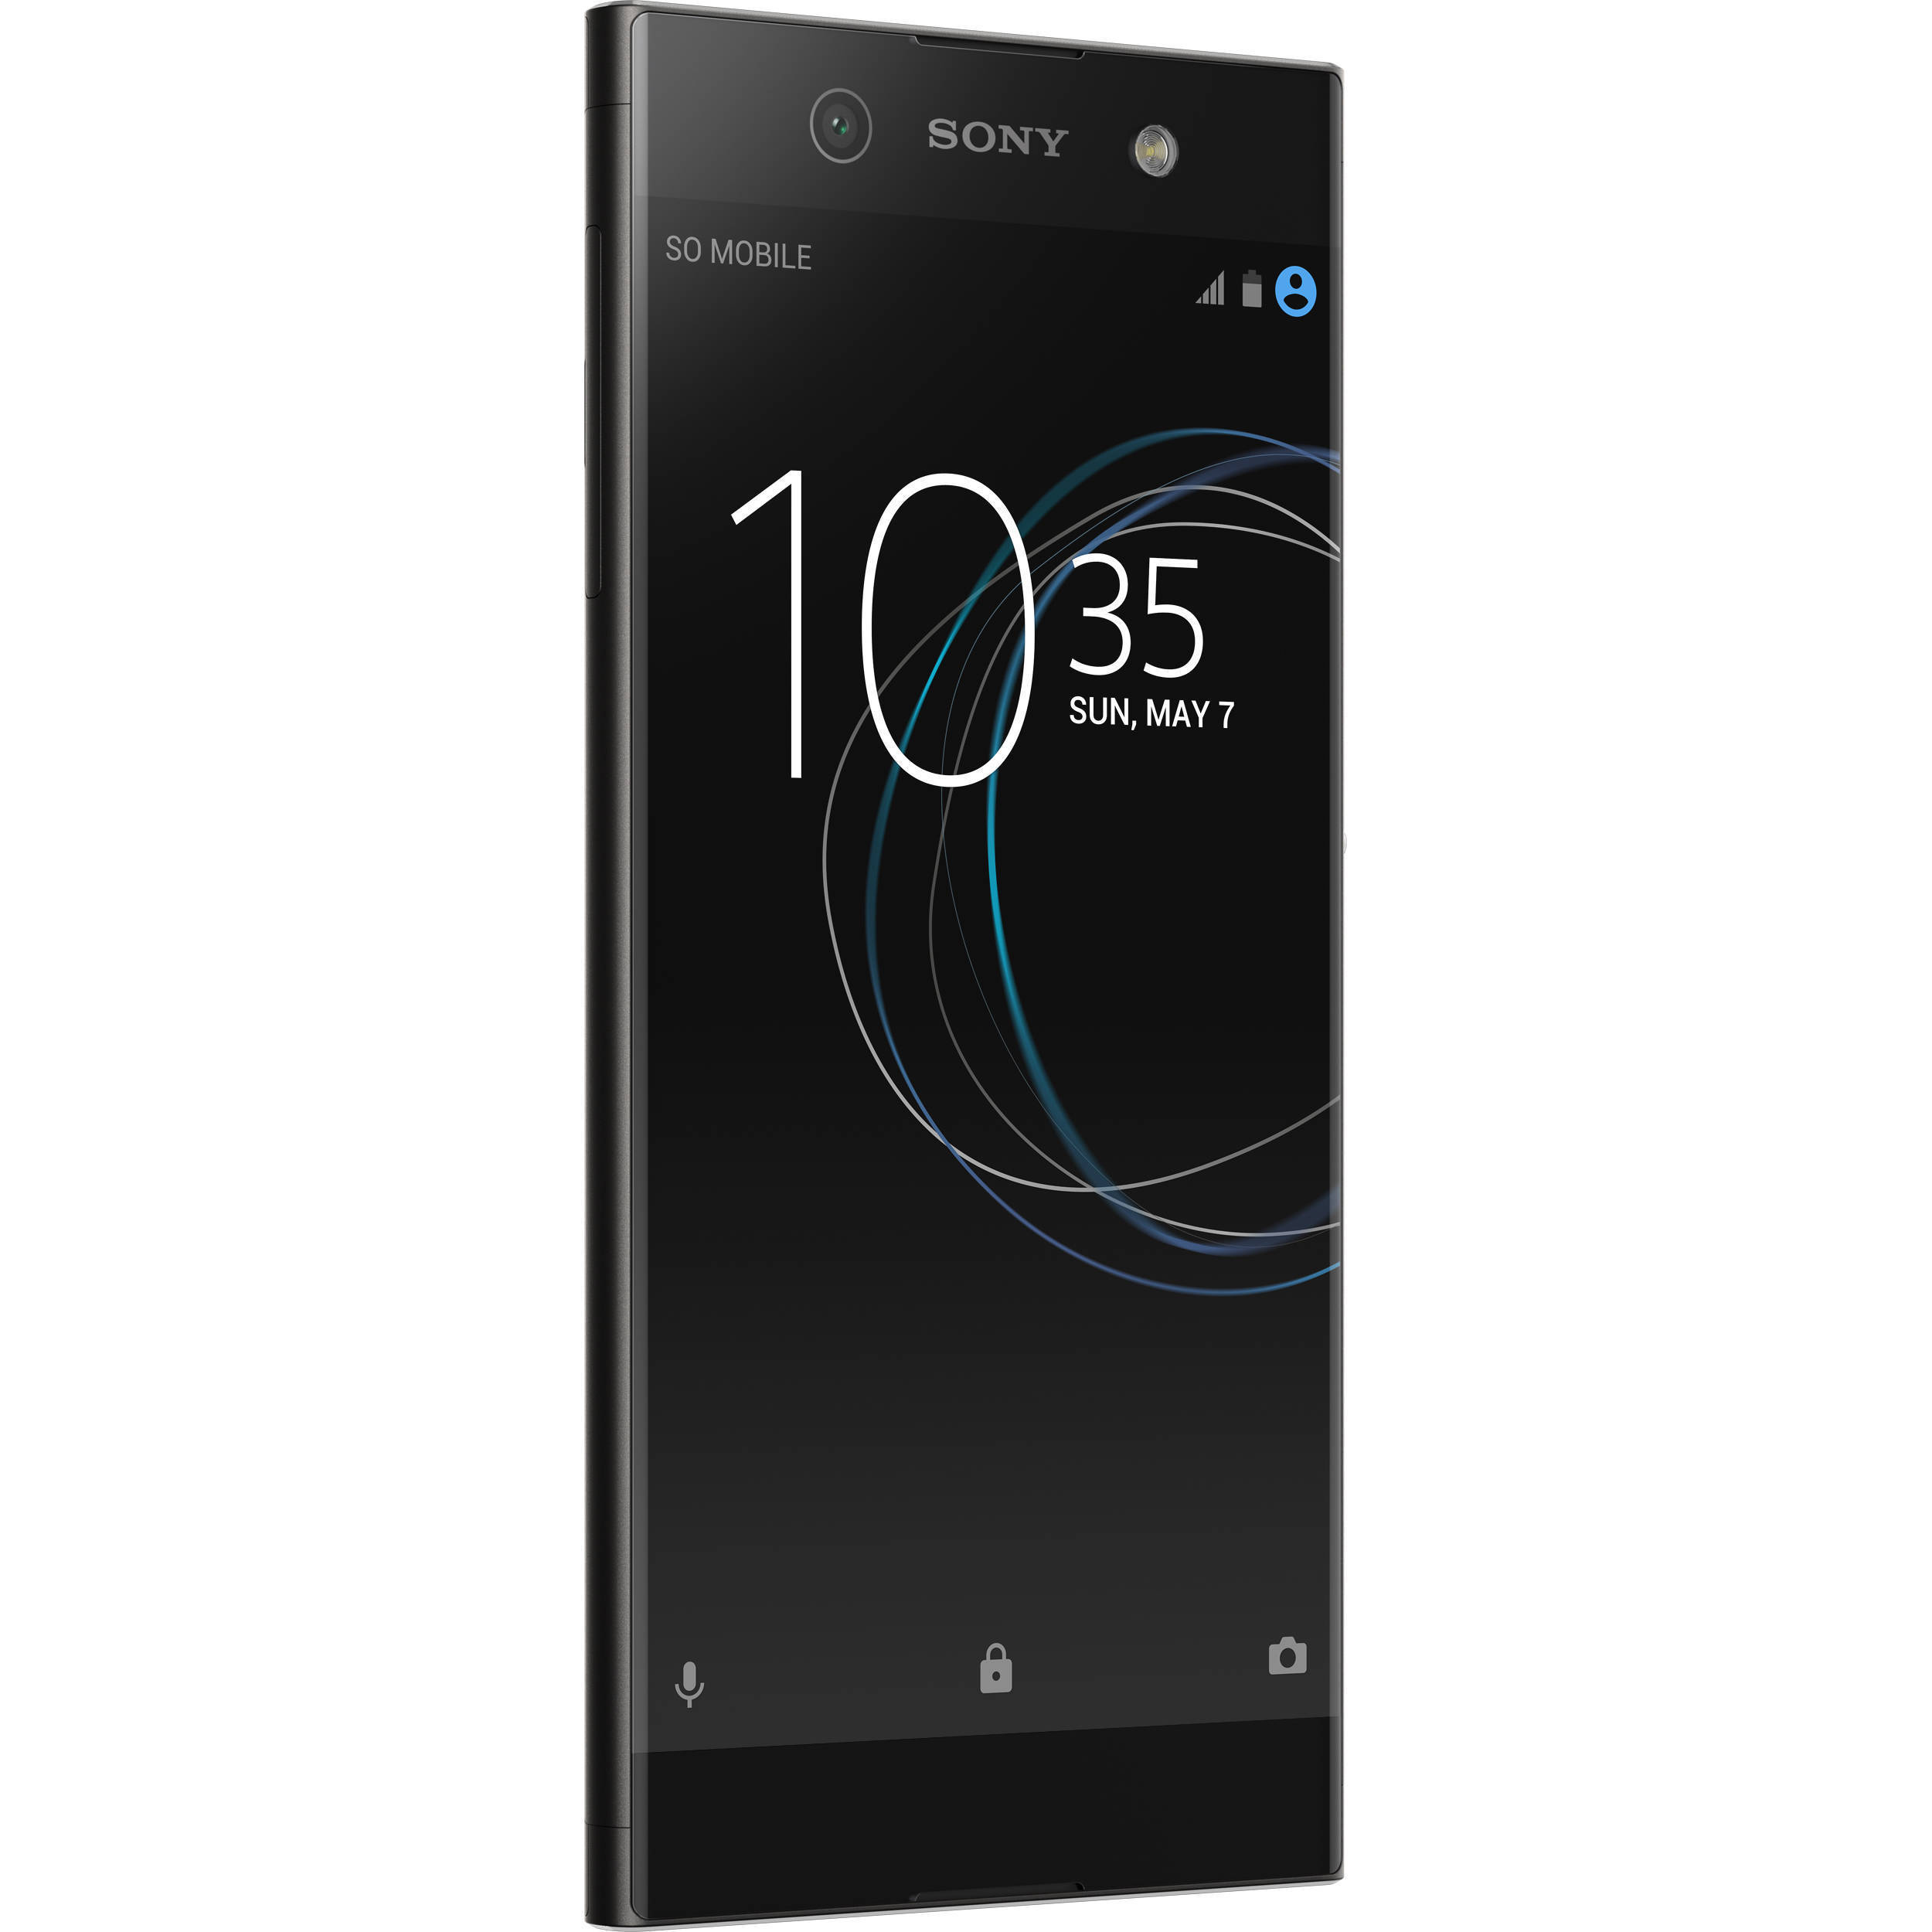 sony xperia xa1 ultra g3223 32gb smartphone 1308 0902 b h photo. Black Bedroom Furniture Sets. Home Design Ideas